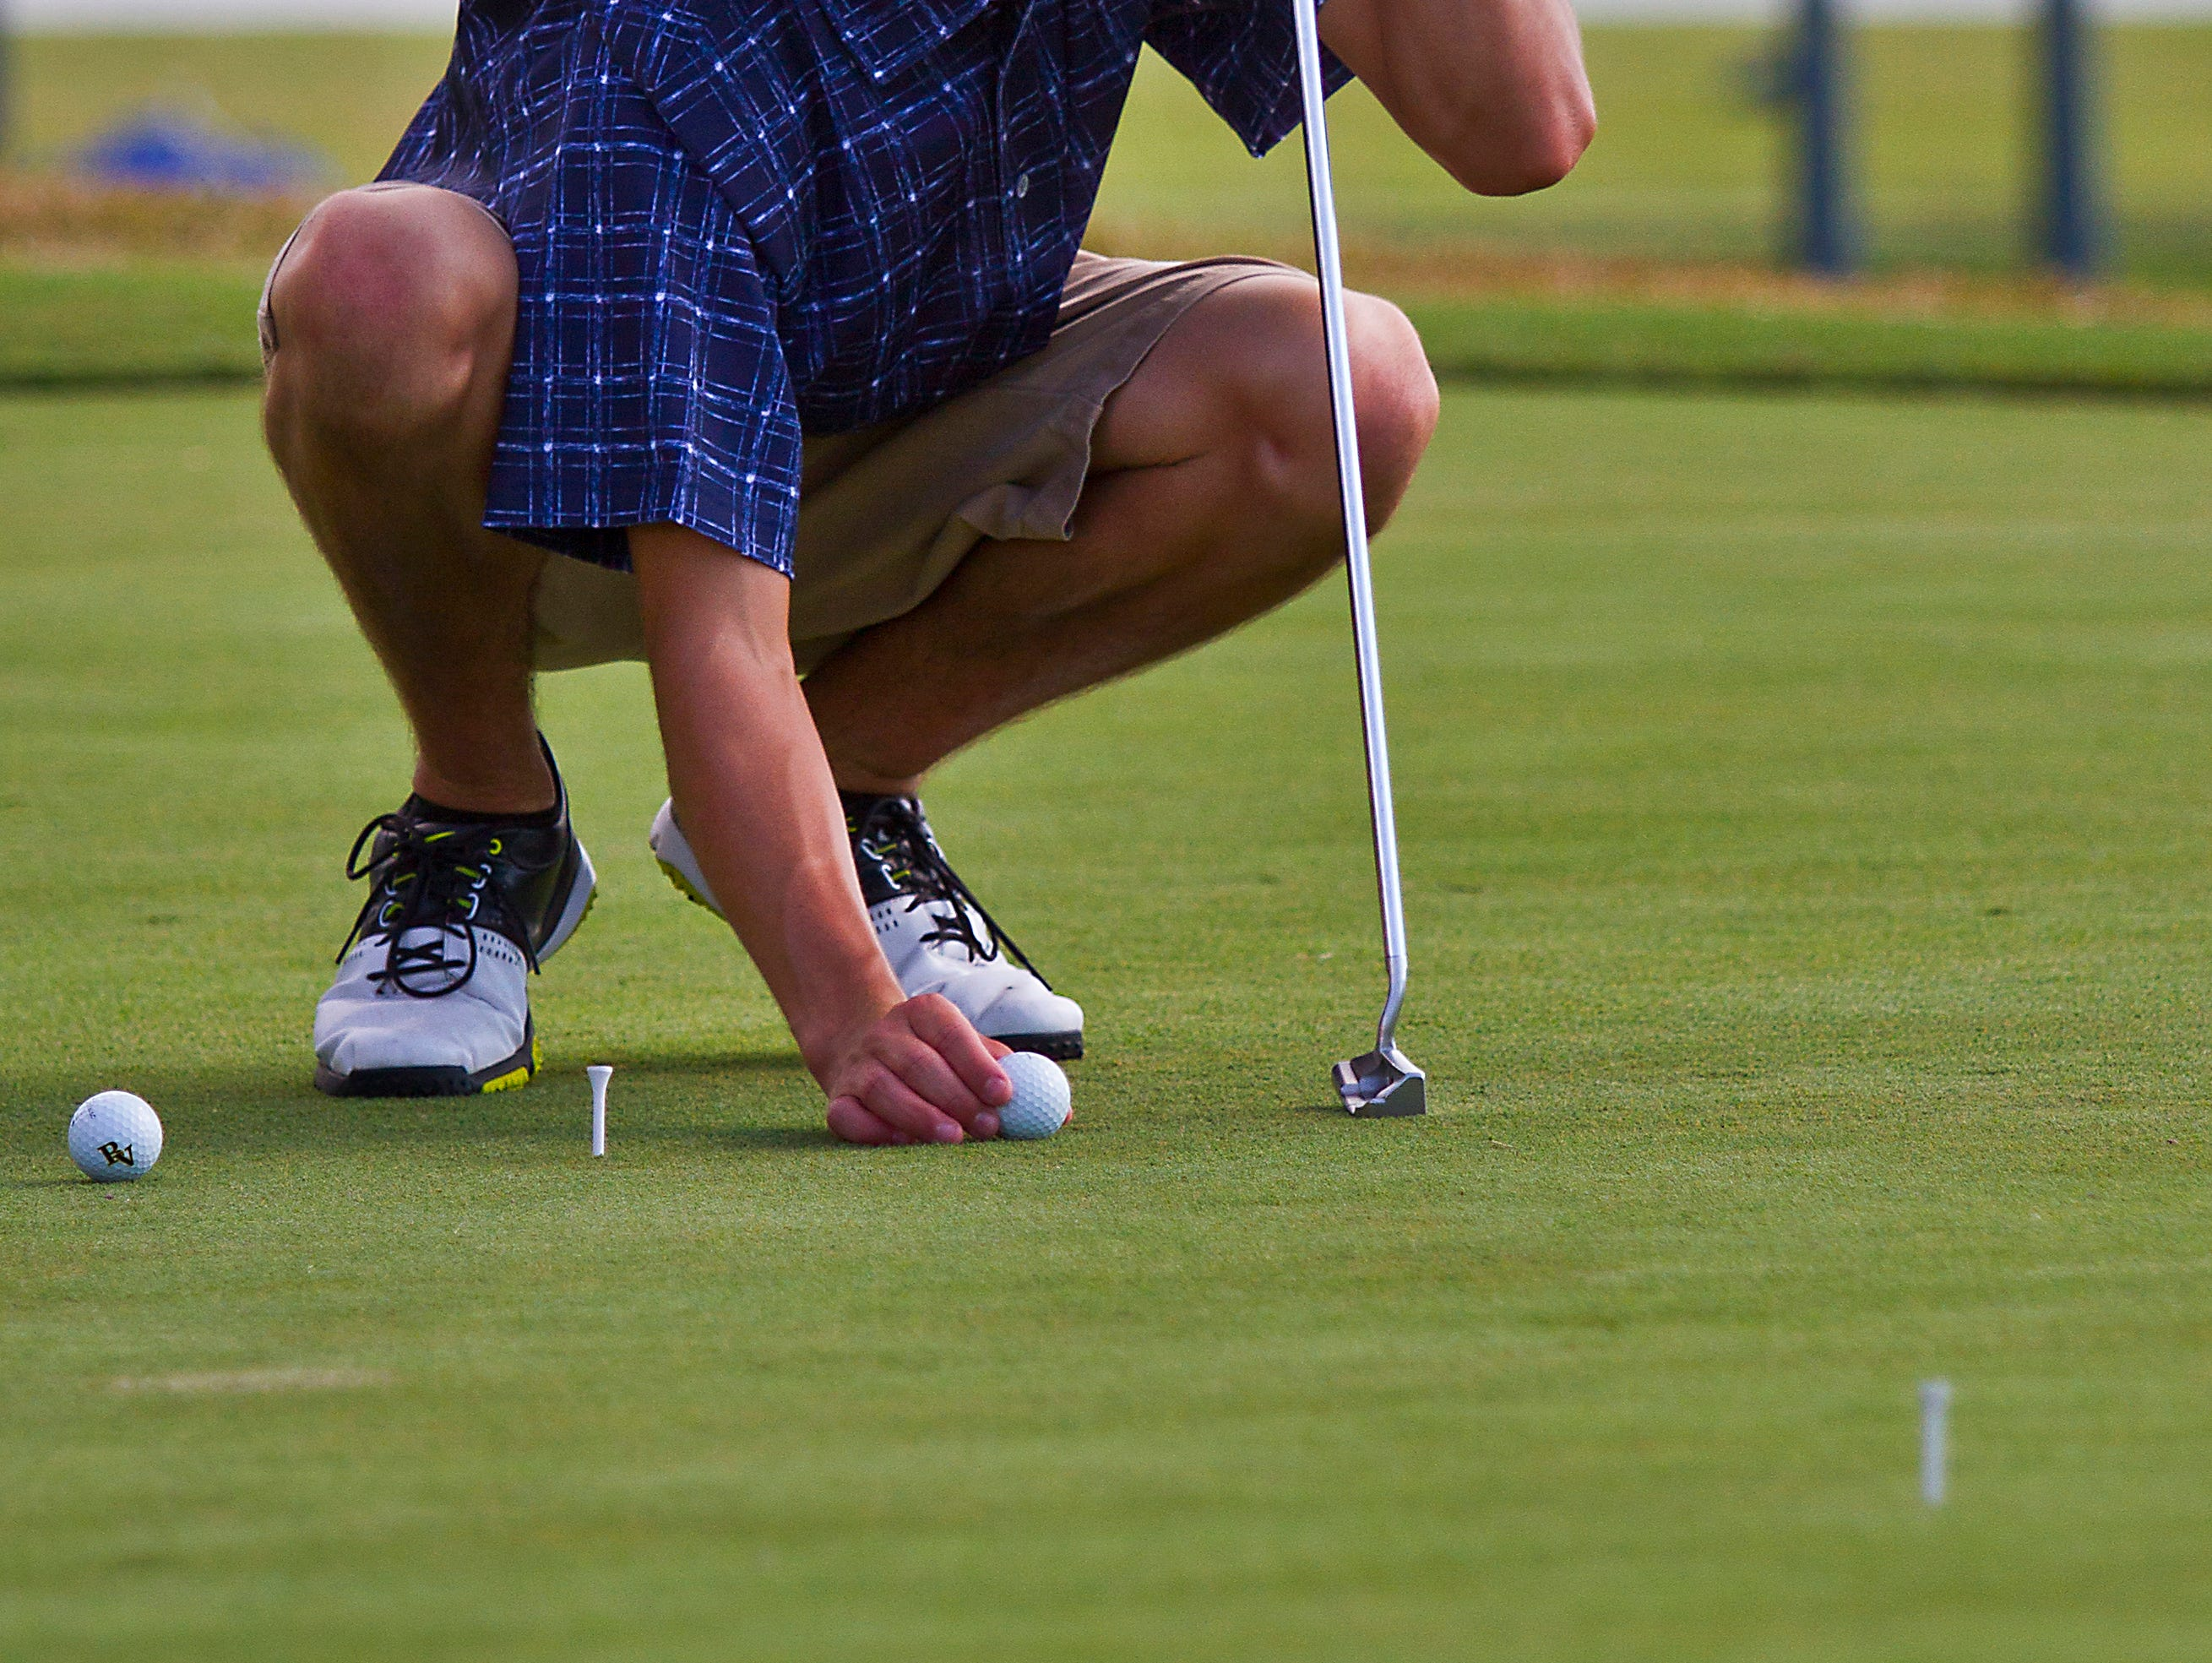 Bishop Verot High School freshman Blake Wheeler, 15, of Fort Myers, works on a putting drill Thursday afternoon at Stoneybrook Golf Club during a team practice.